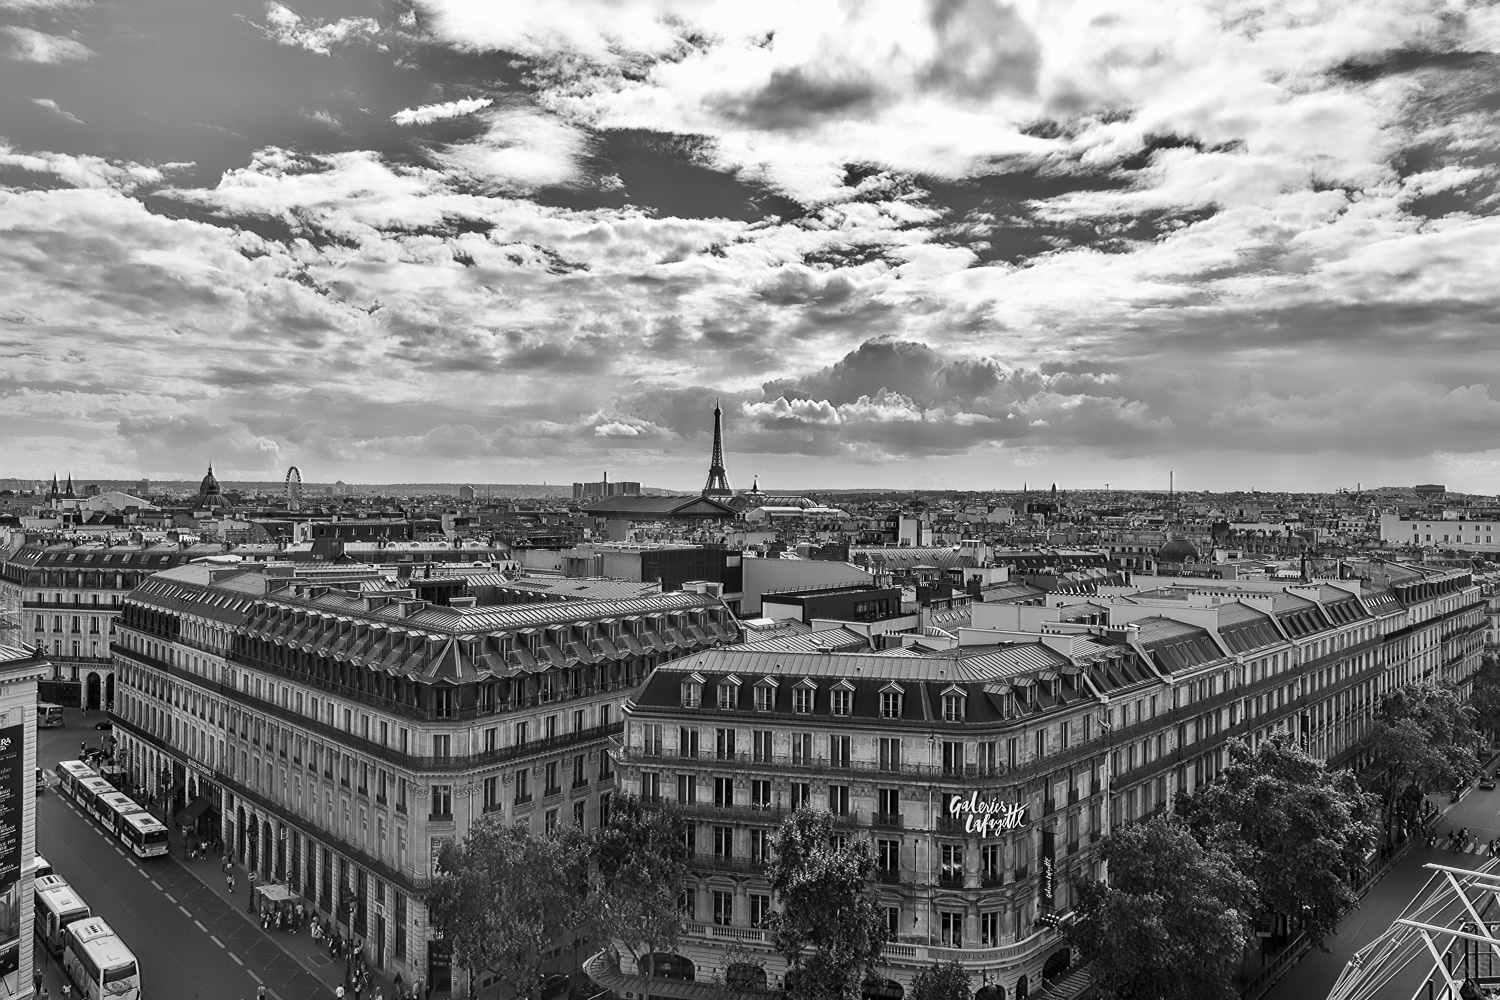 View from the Terrasse at Galeries Lafayette in Paris